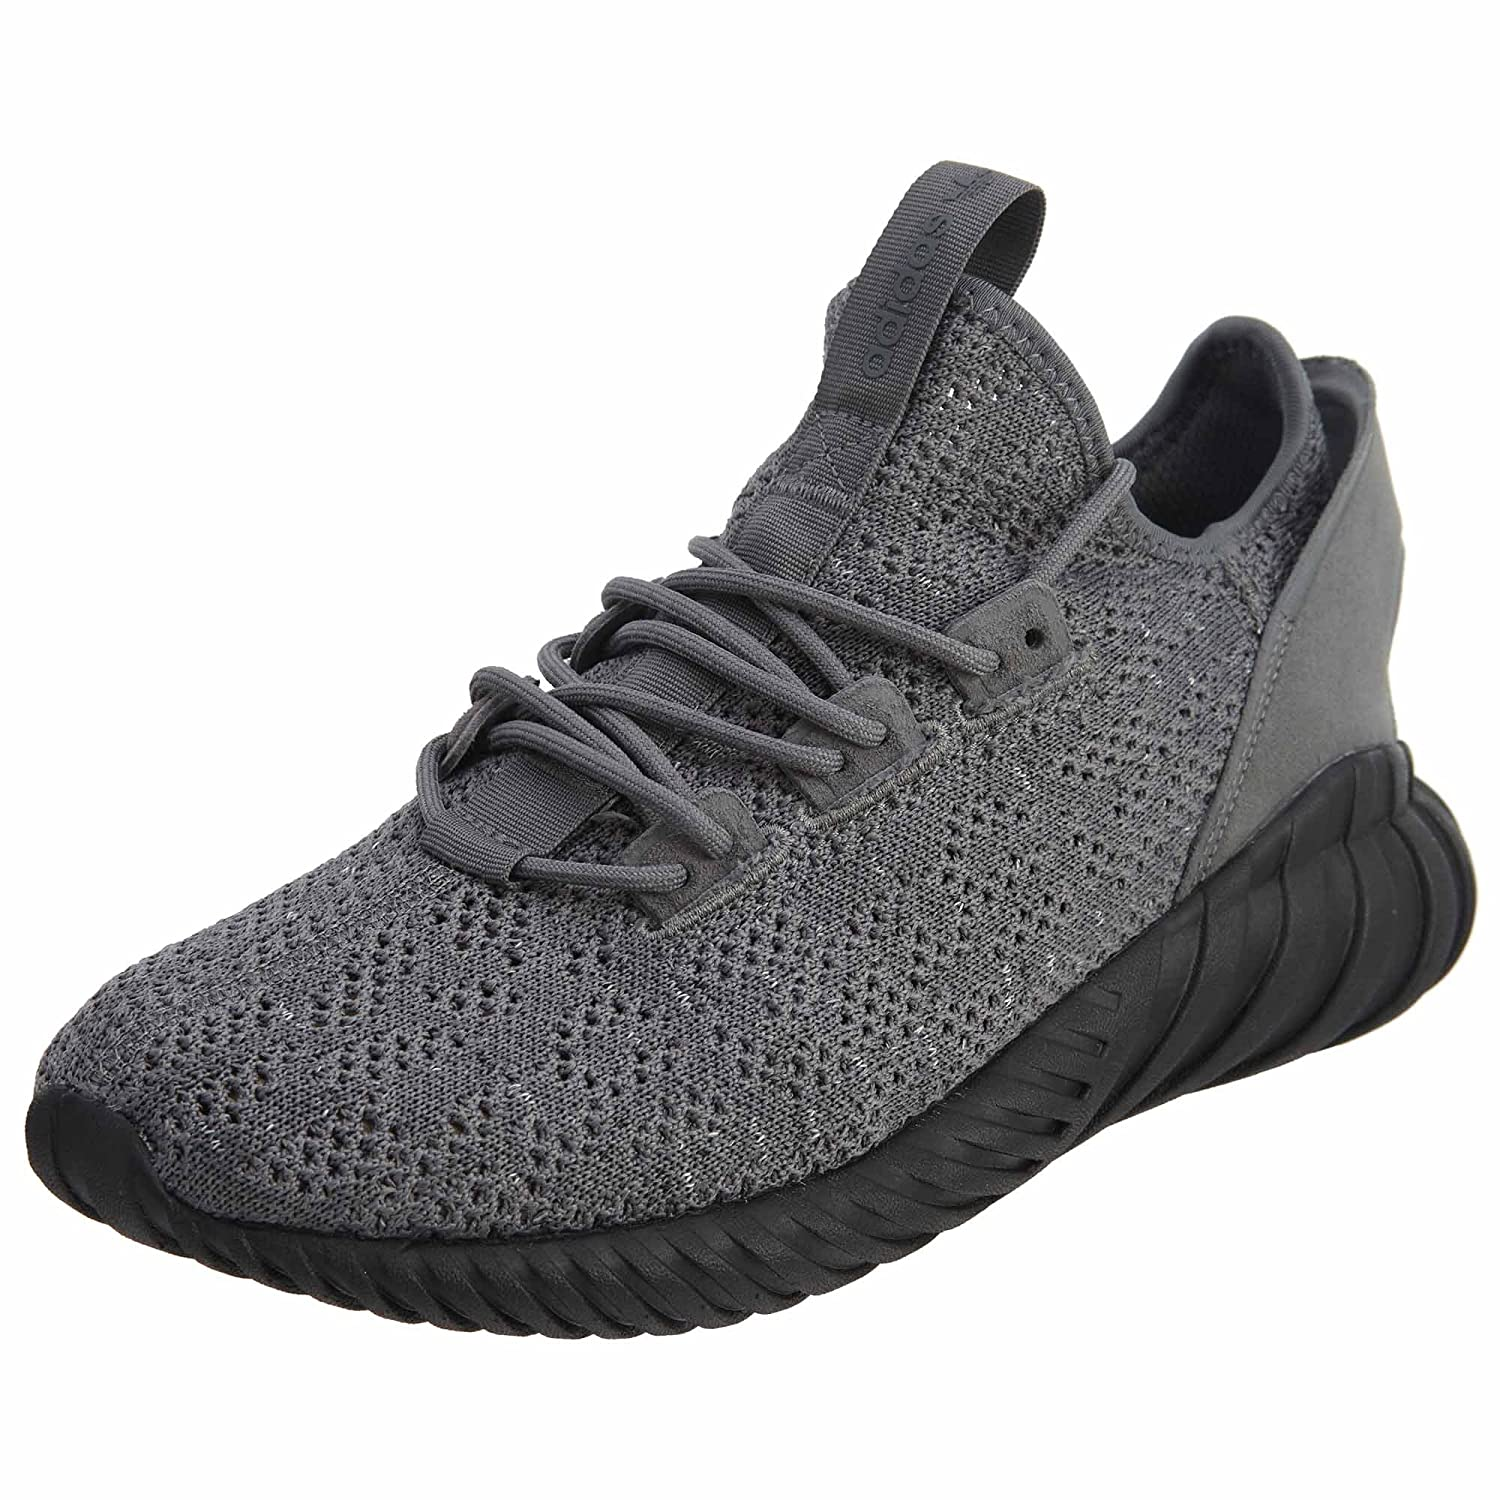 premium selection 6d6ac b2220 adidas Tubular Doom Sock PK Mens Shoes Grey/Core Black/Footwear White  by3564 (8.5 M US)